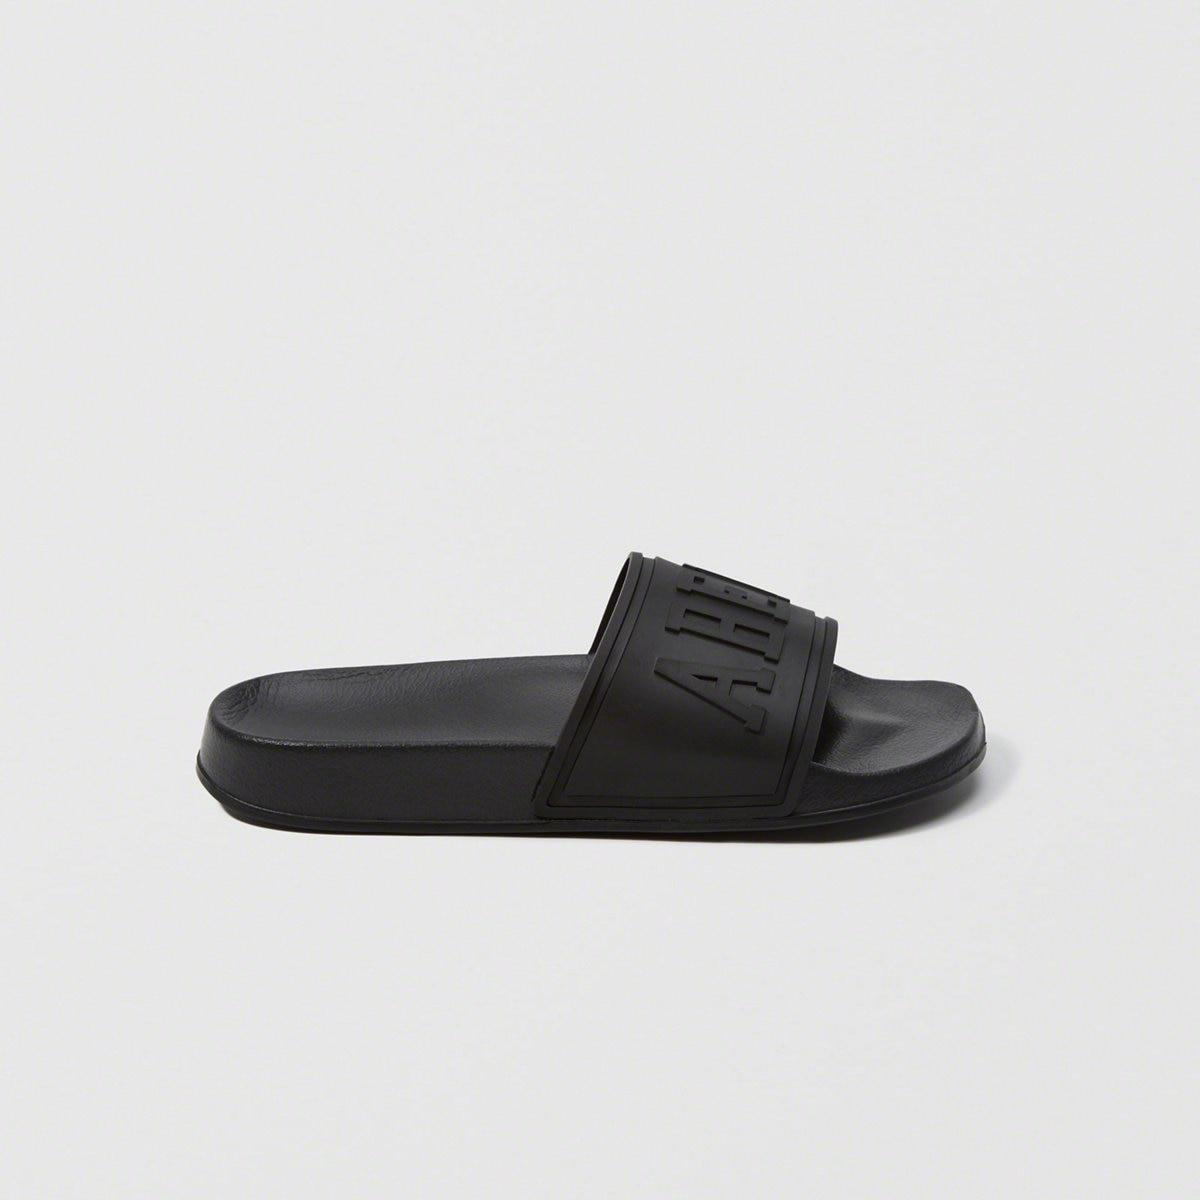 474a74b78 Lyst - Abercrombie   Fitch Athletic Slide Sandals in Black